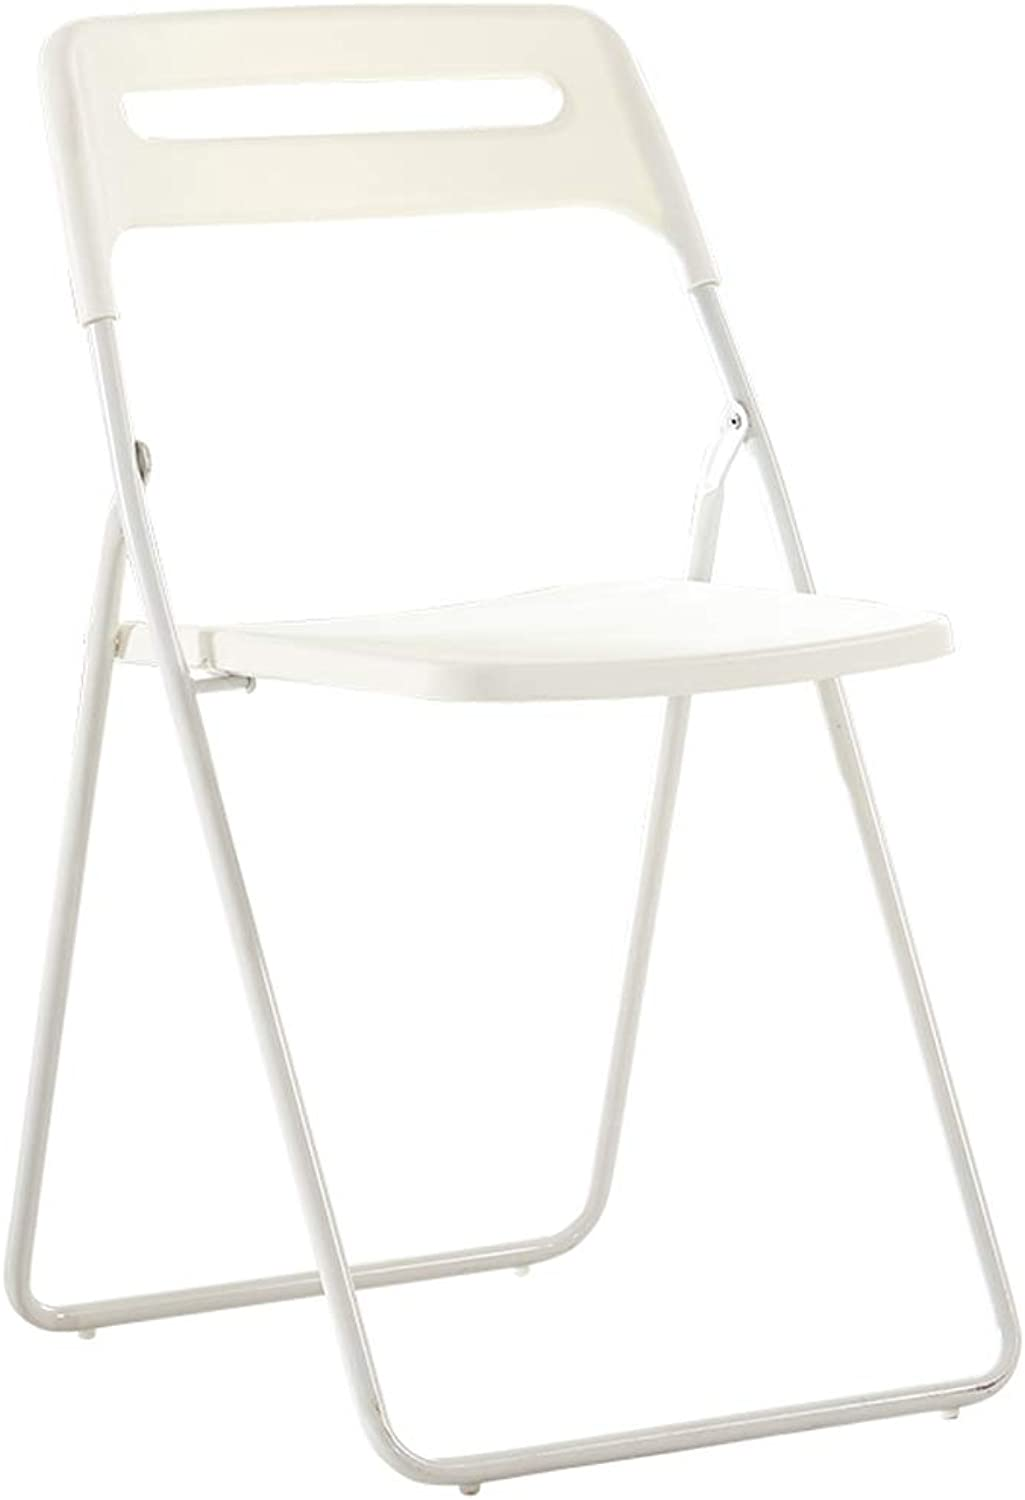 QYSZYG Chair Plastic Folding Chair Home Dining Chair Office Training Chair Six colors Optional Stool (color   White)